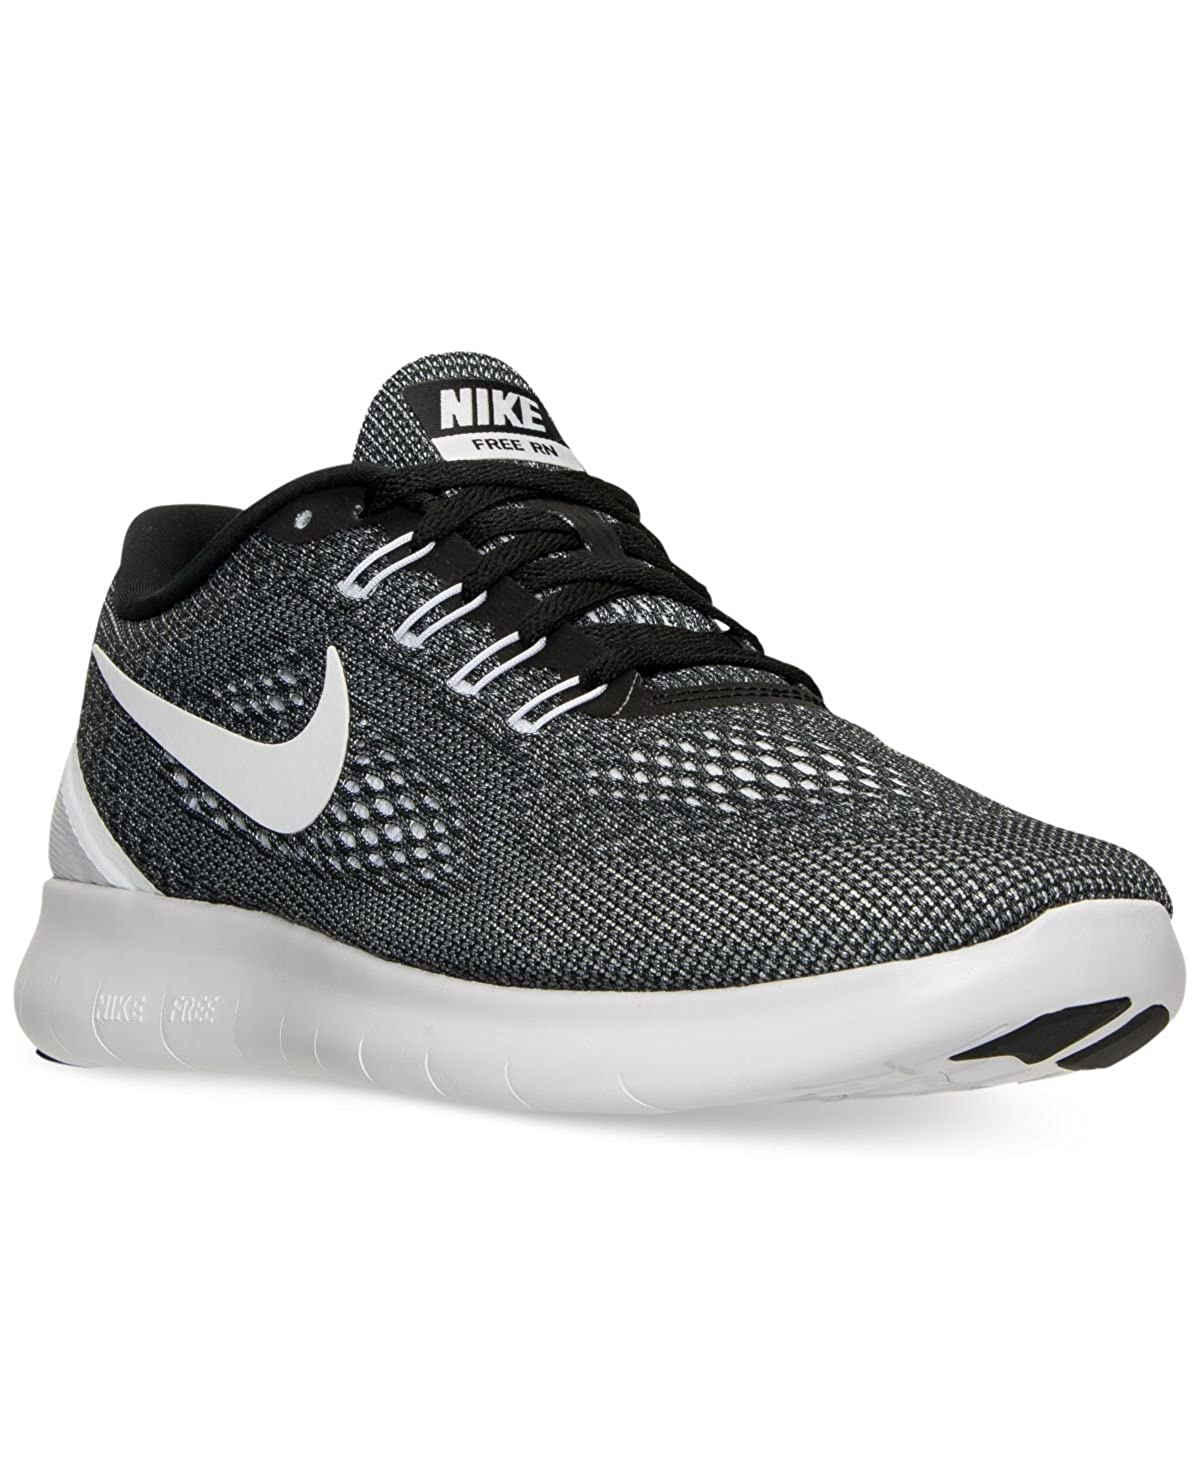 newest 665af 3d202 Amazon.com   Nike Mens Free Run Running Sneakers from Finish Line Black    Road Running